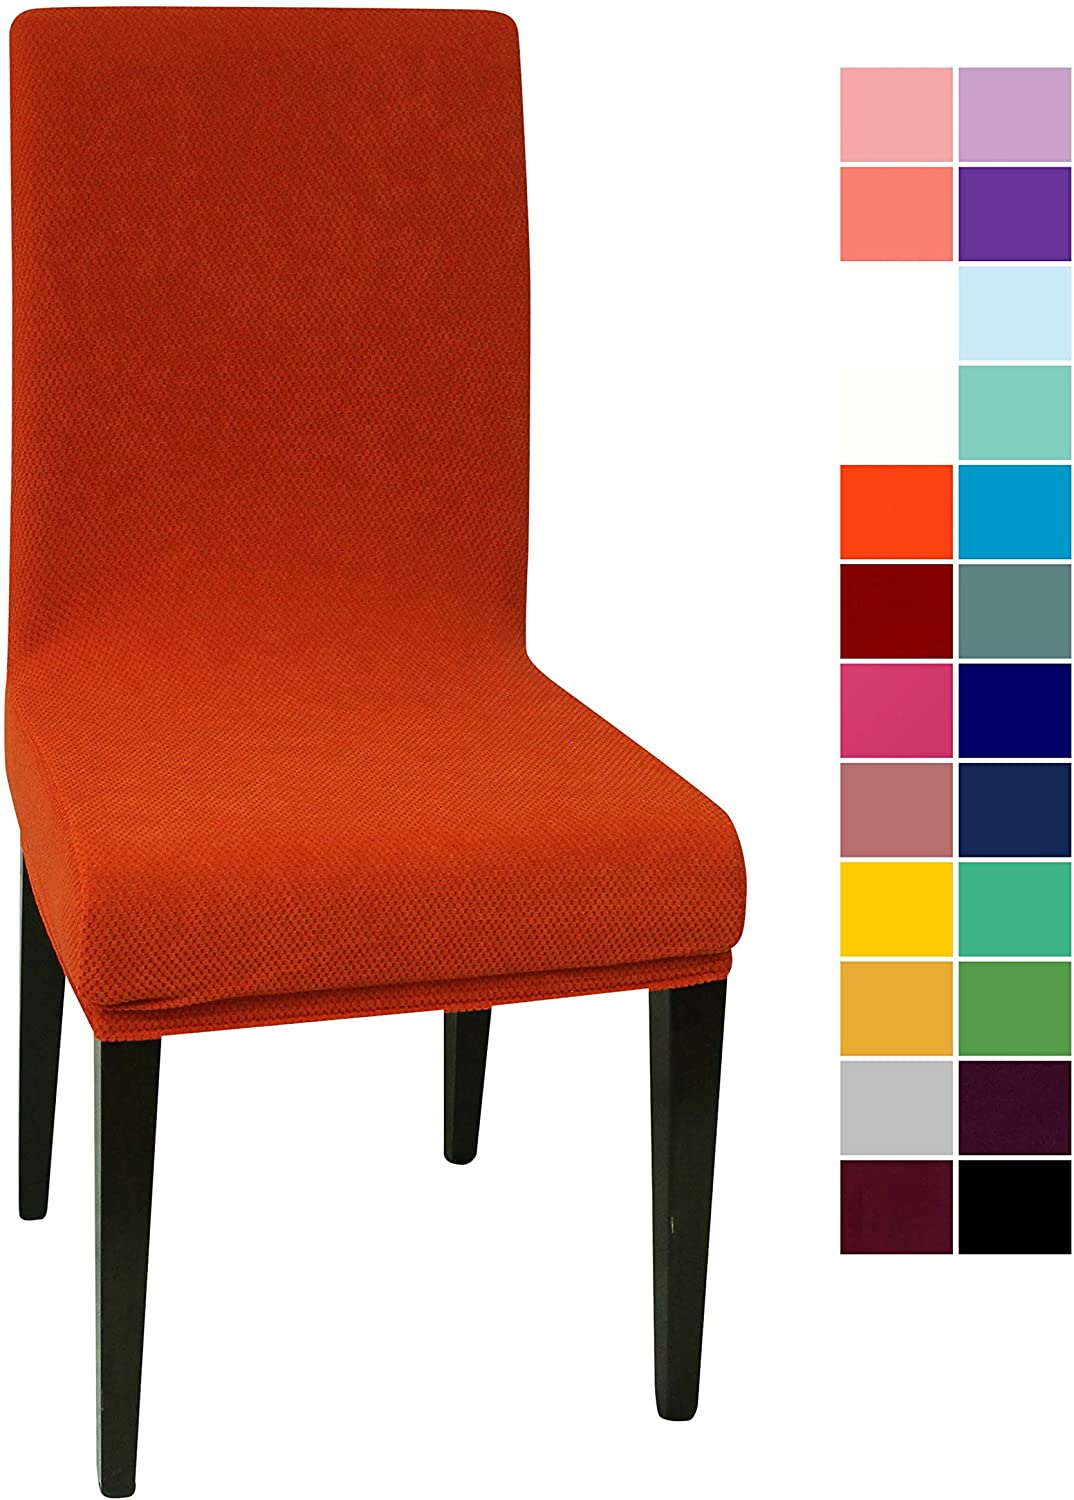 Orange Jacquard Spandex Dining Chair Covers - 4 PCS Stretch Removable Washable Dining Chair Slipcovers (Orange Jacquard, 4)